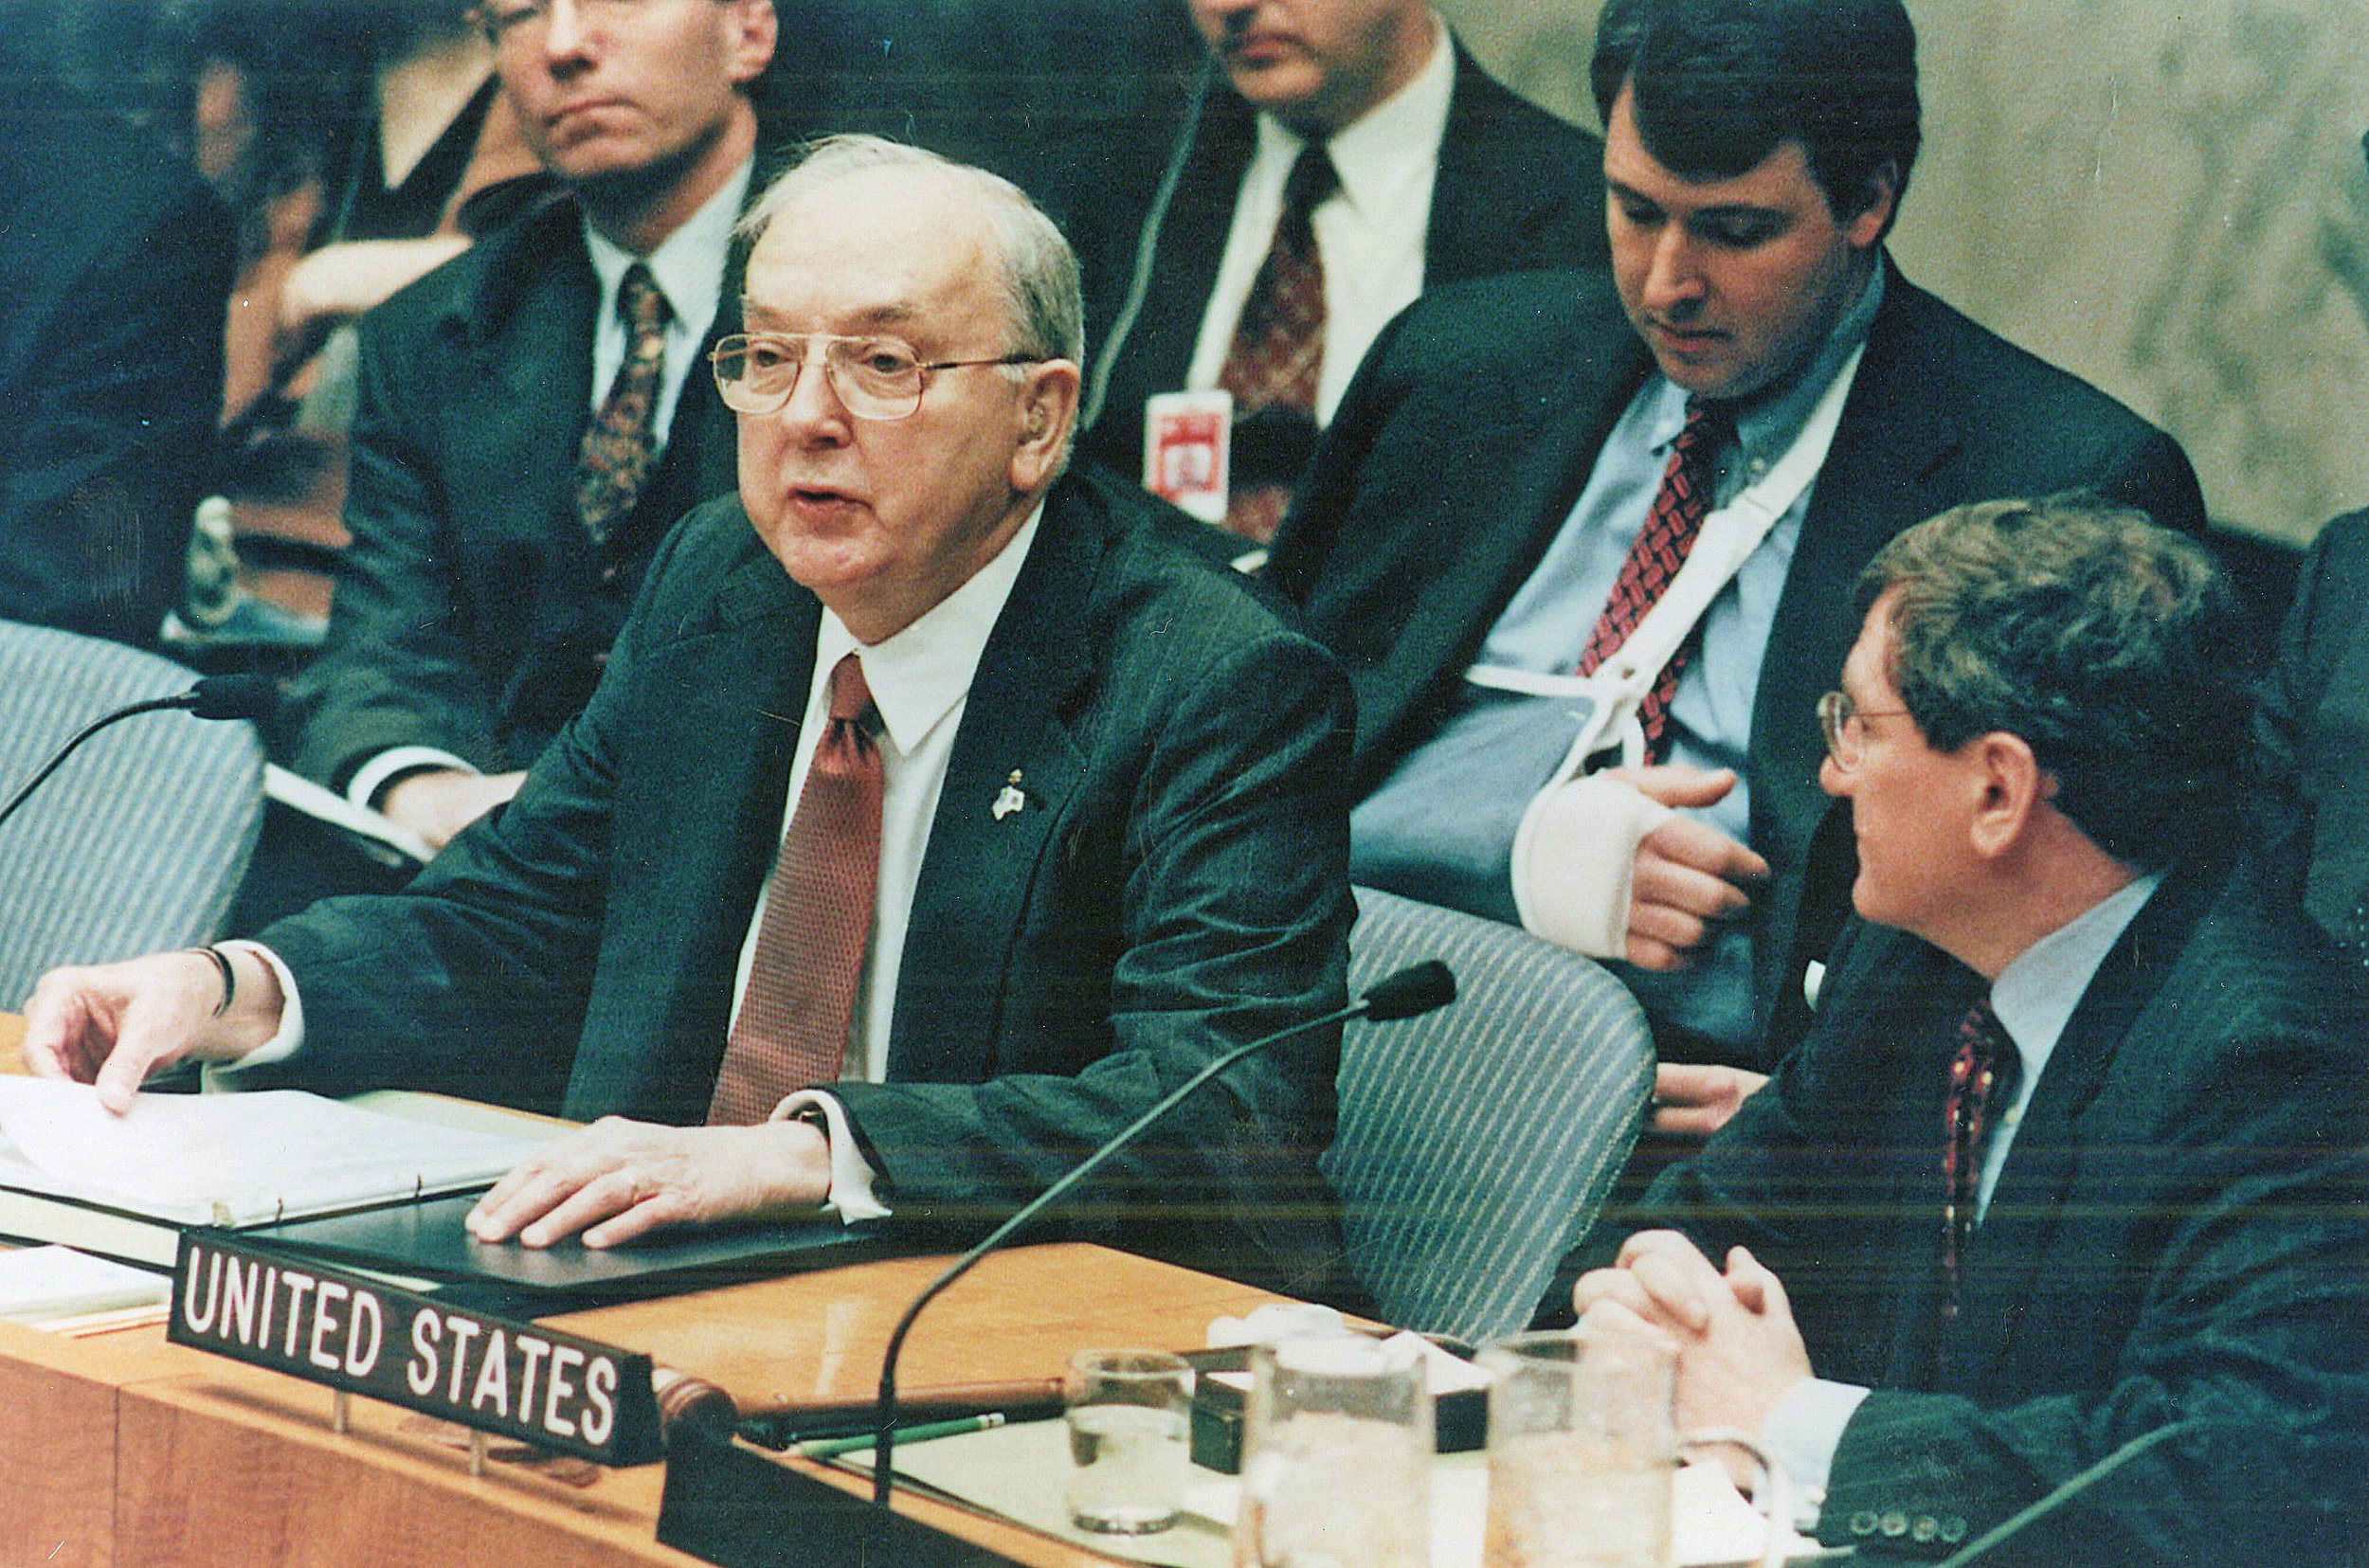 Senator Helms speaks at the United Nations Security Council, January 20, 2000.